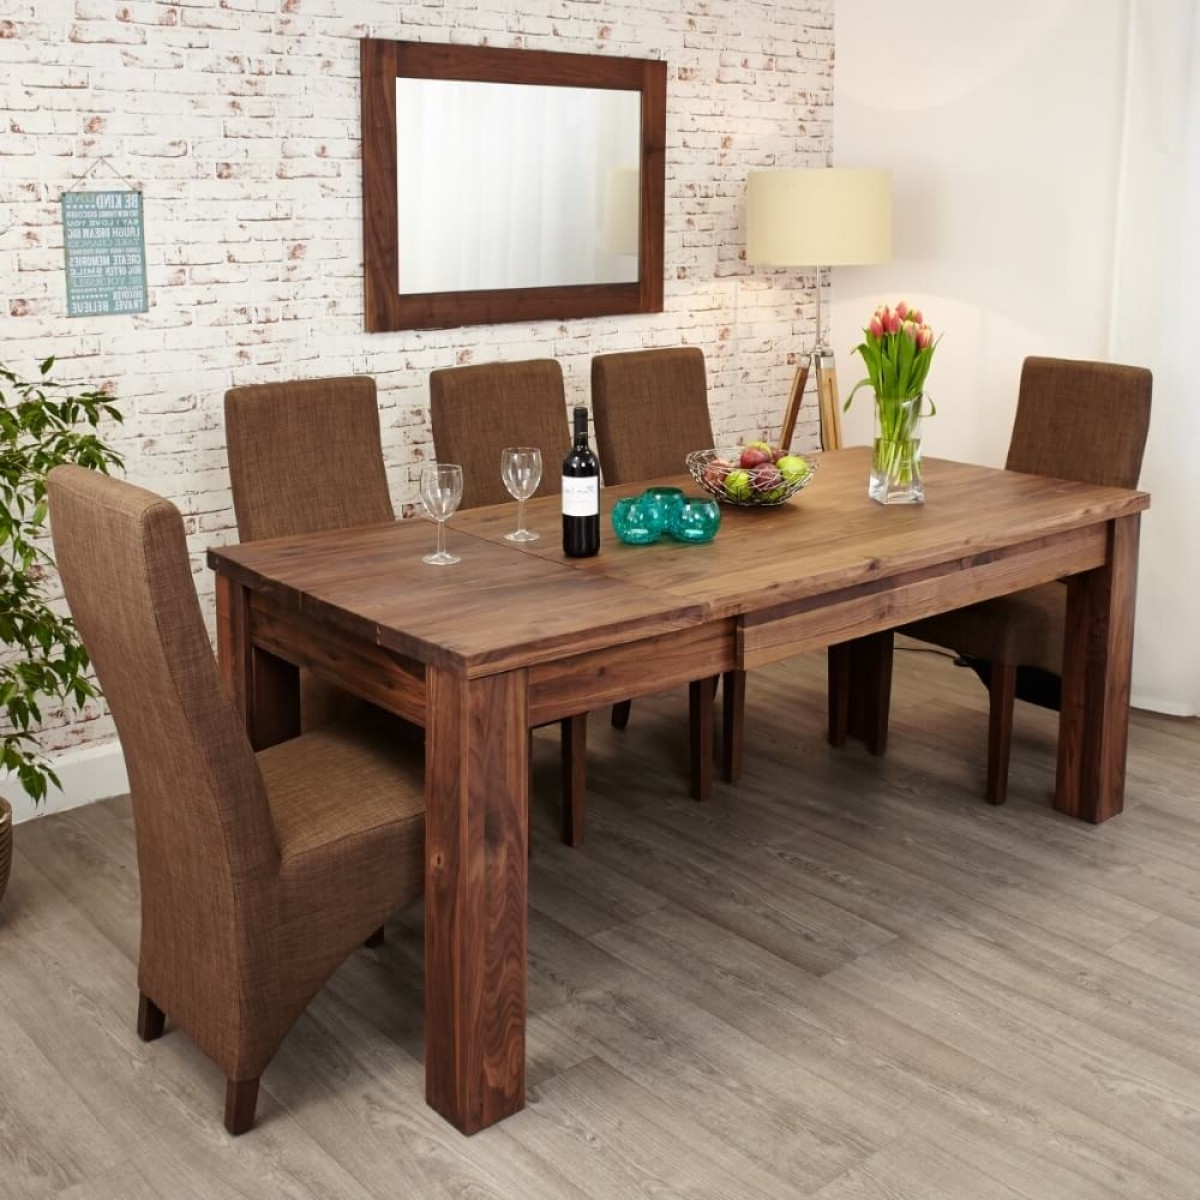 Dining Tables - Mayan Walnut Extending Dining Table Cwc04A within Well known Walnut Dining Tables